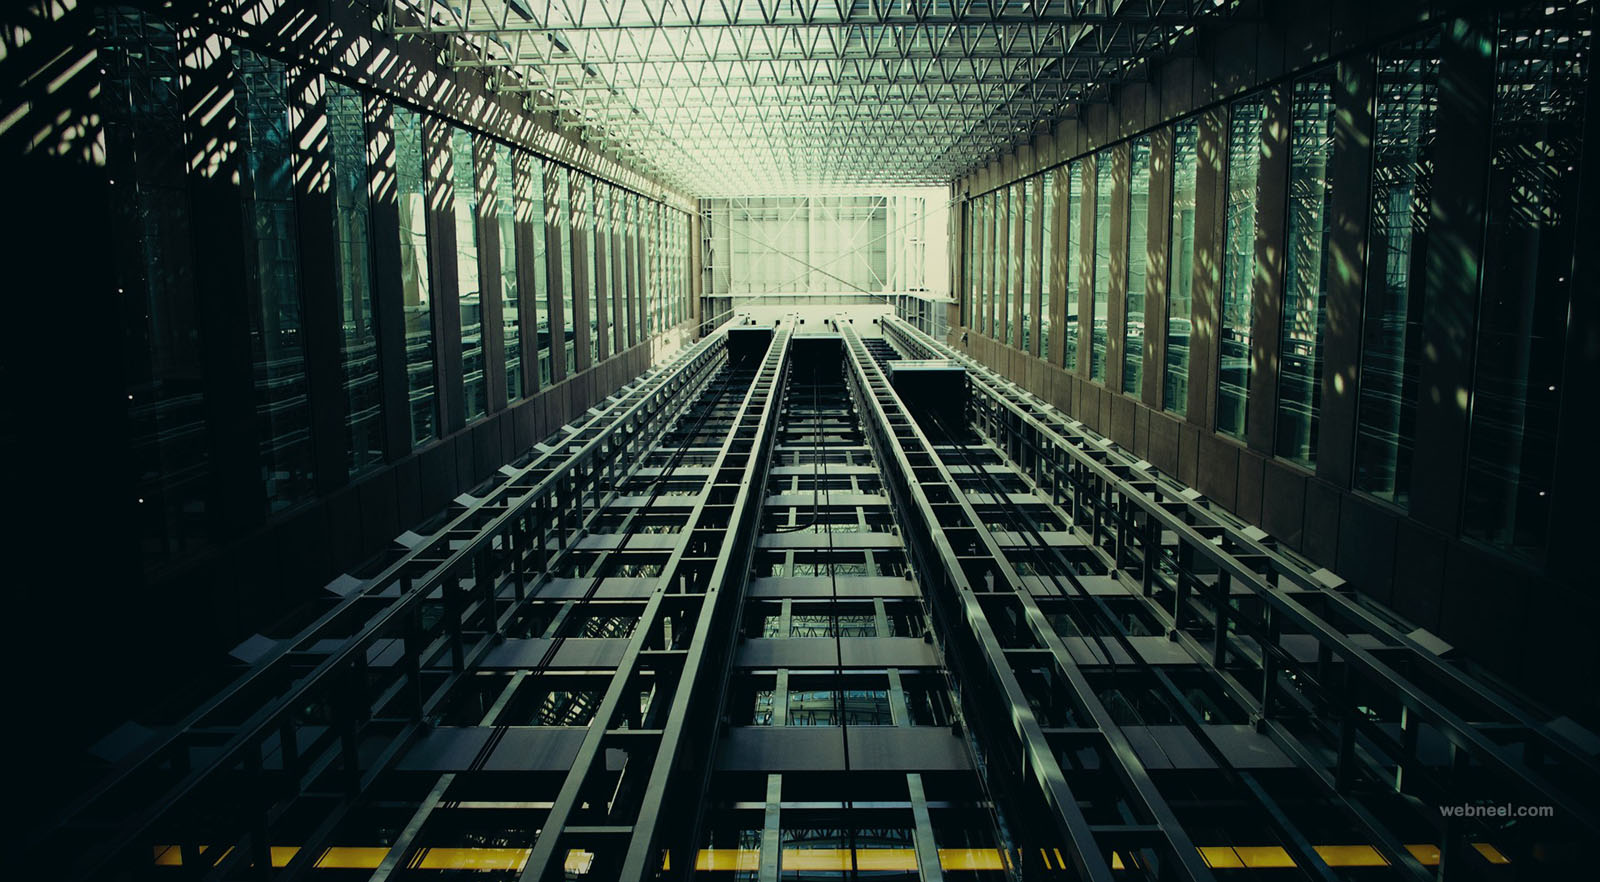 abstract photography elevators